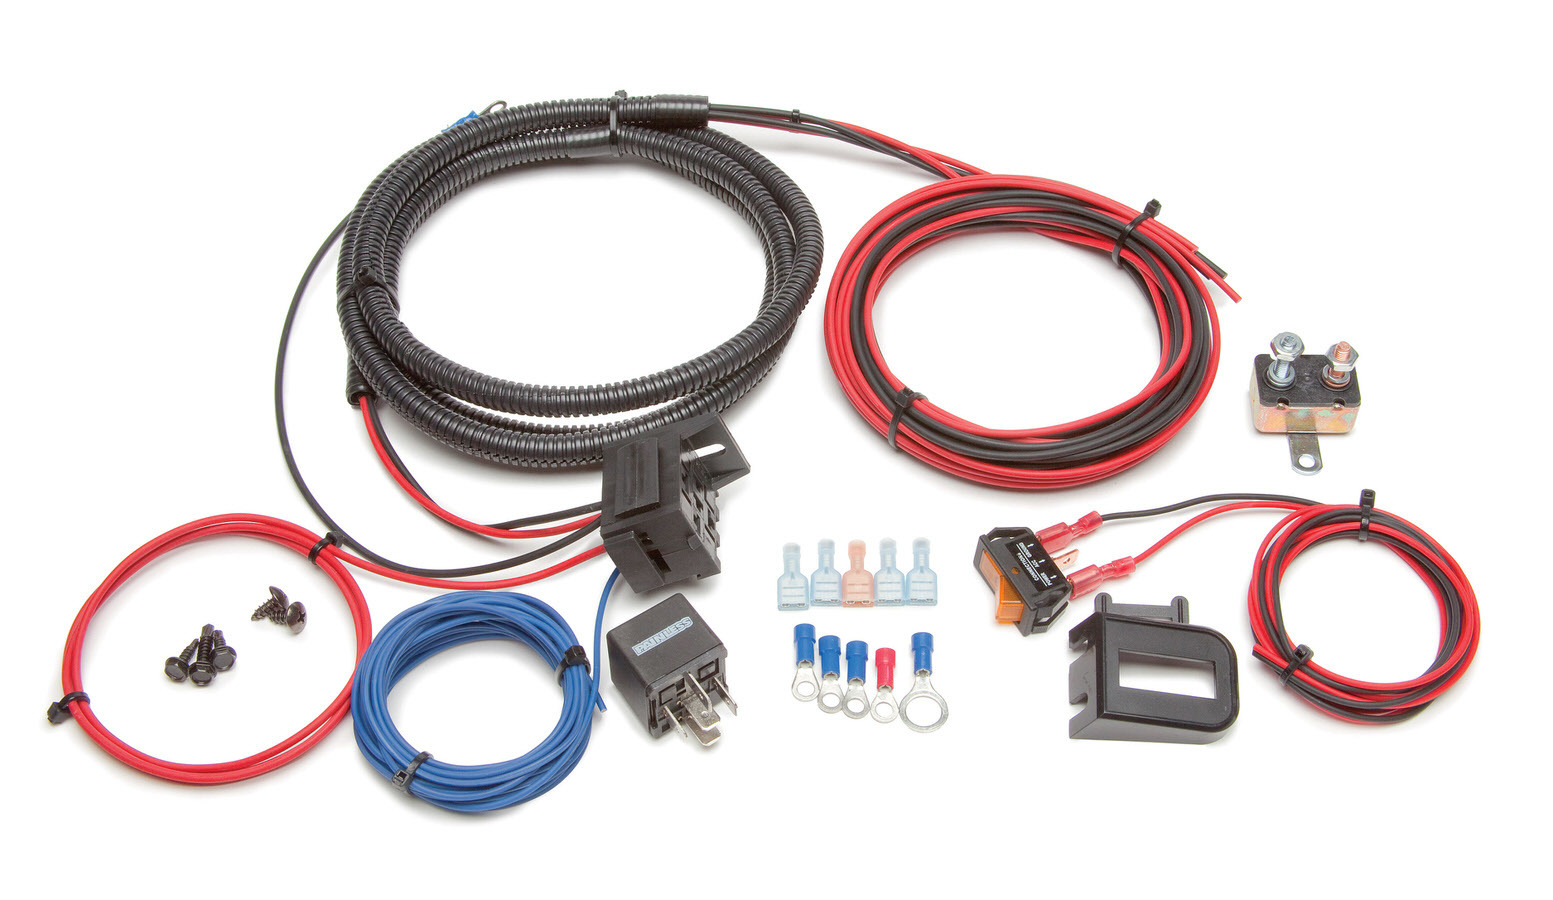 Painless Wiring 30803 Auxiliary Light Wiring, 30 amp Relay, Fuse / Switch / Wiring Pigtail Included, Universal, Kit